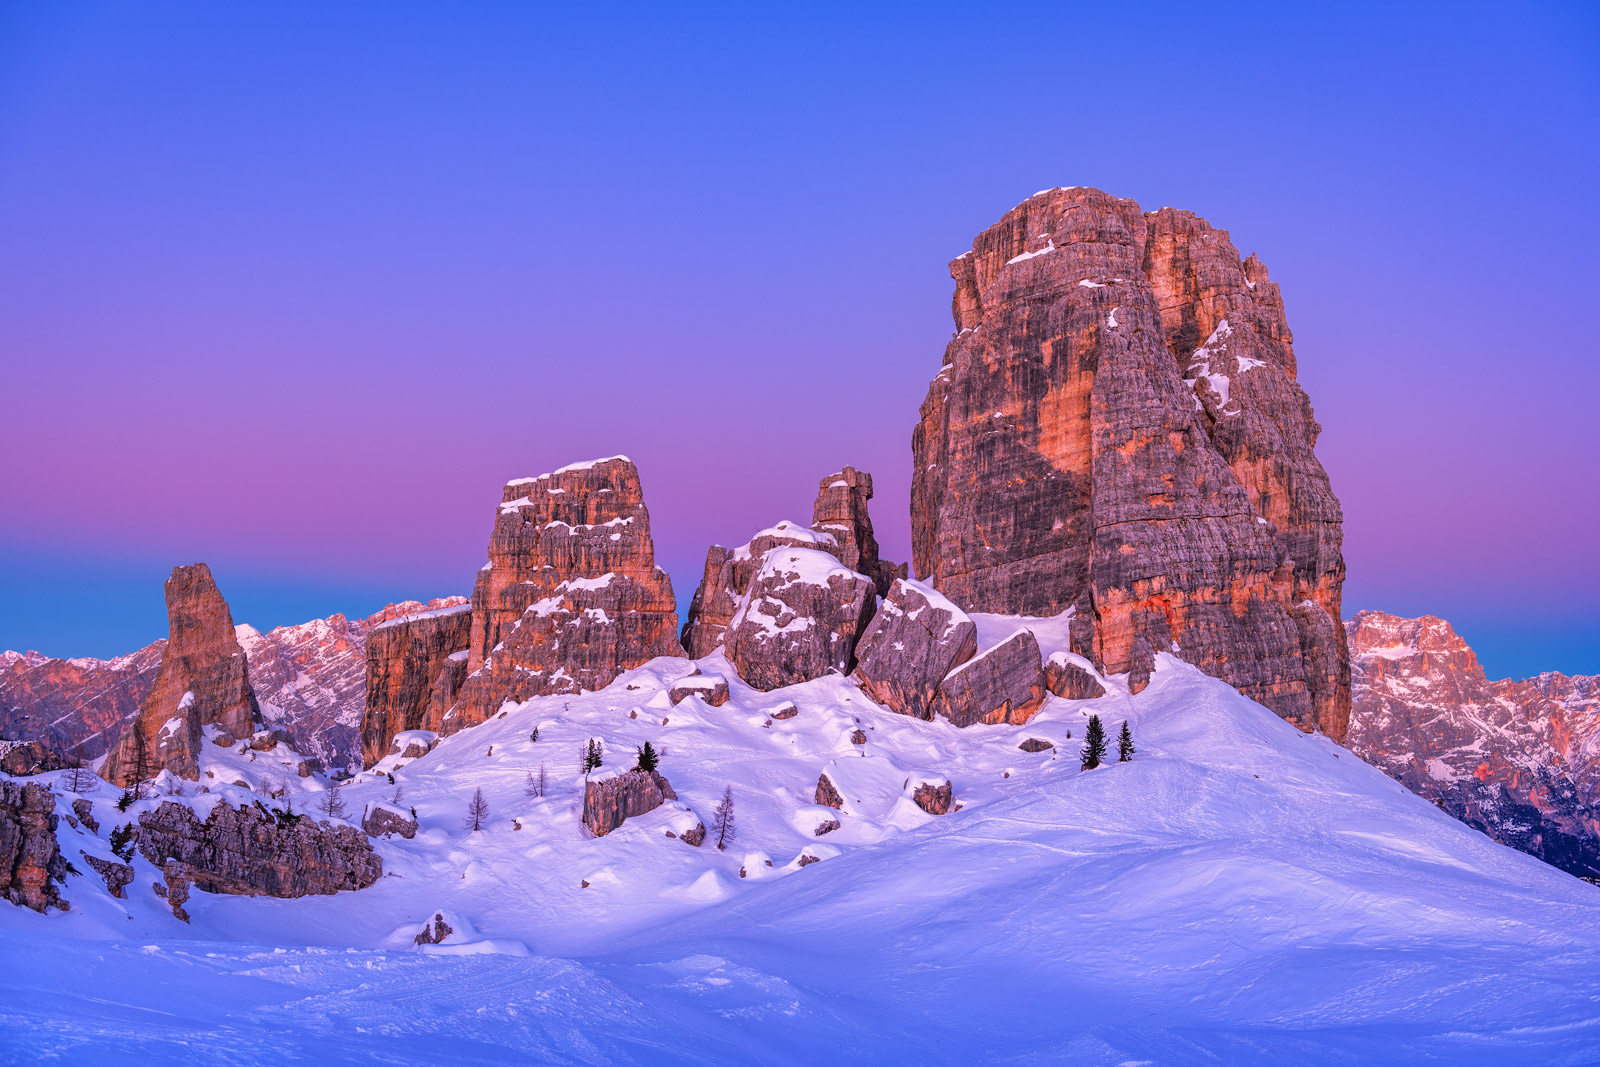 Italy, Dolomites, Mountains, sunrise, limited edition, photograph, fine art, landscape, photo